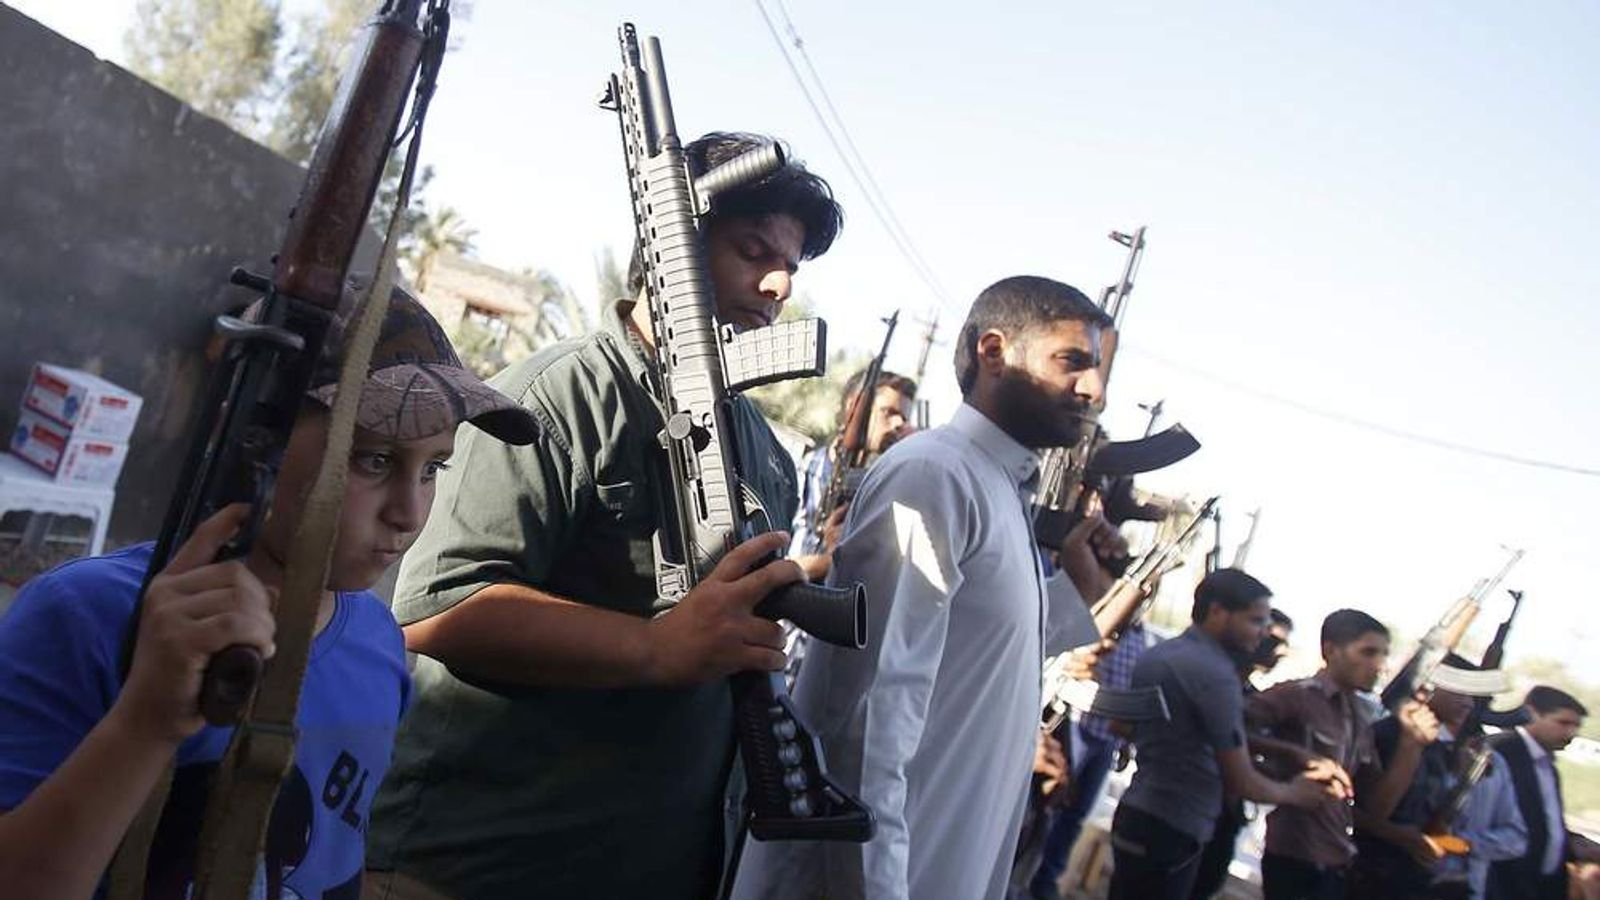 IRAQ-UNREST-VOLUNTEERS